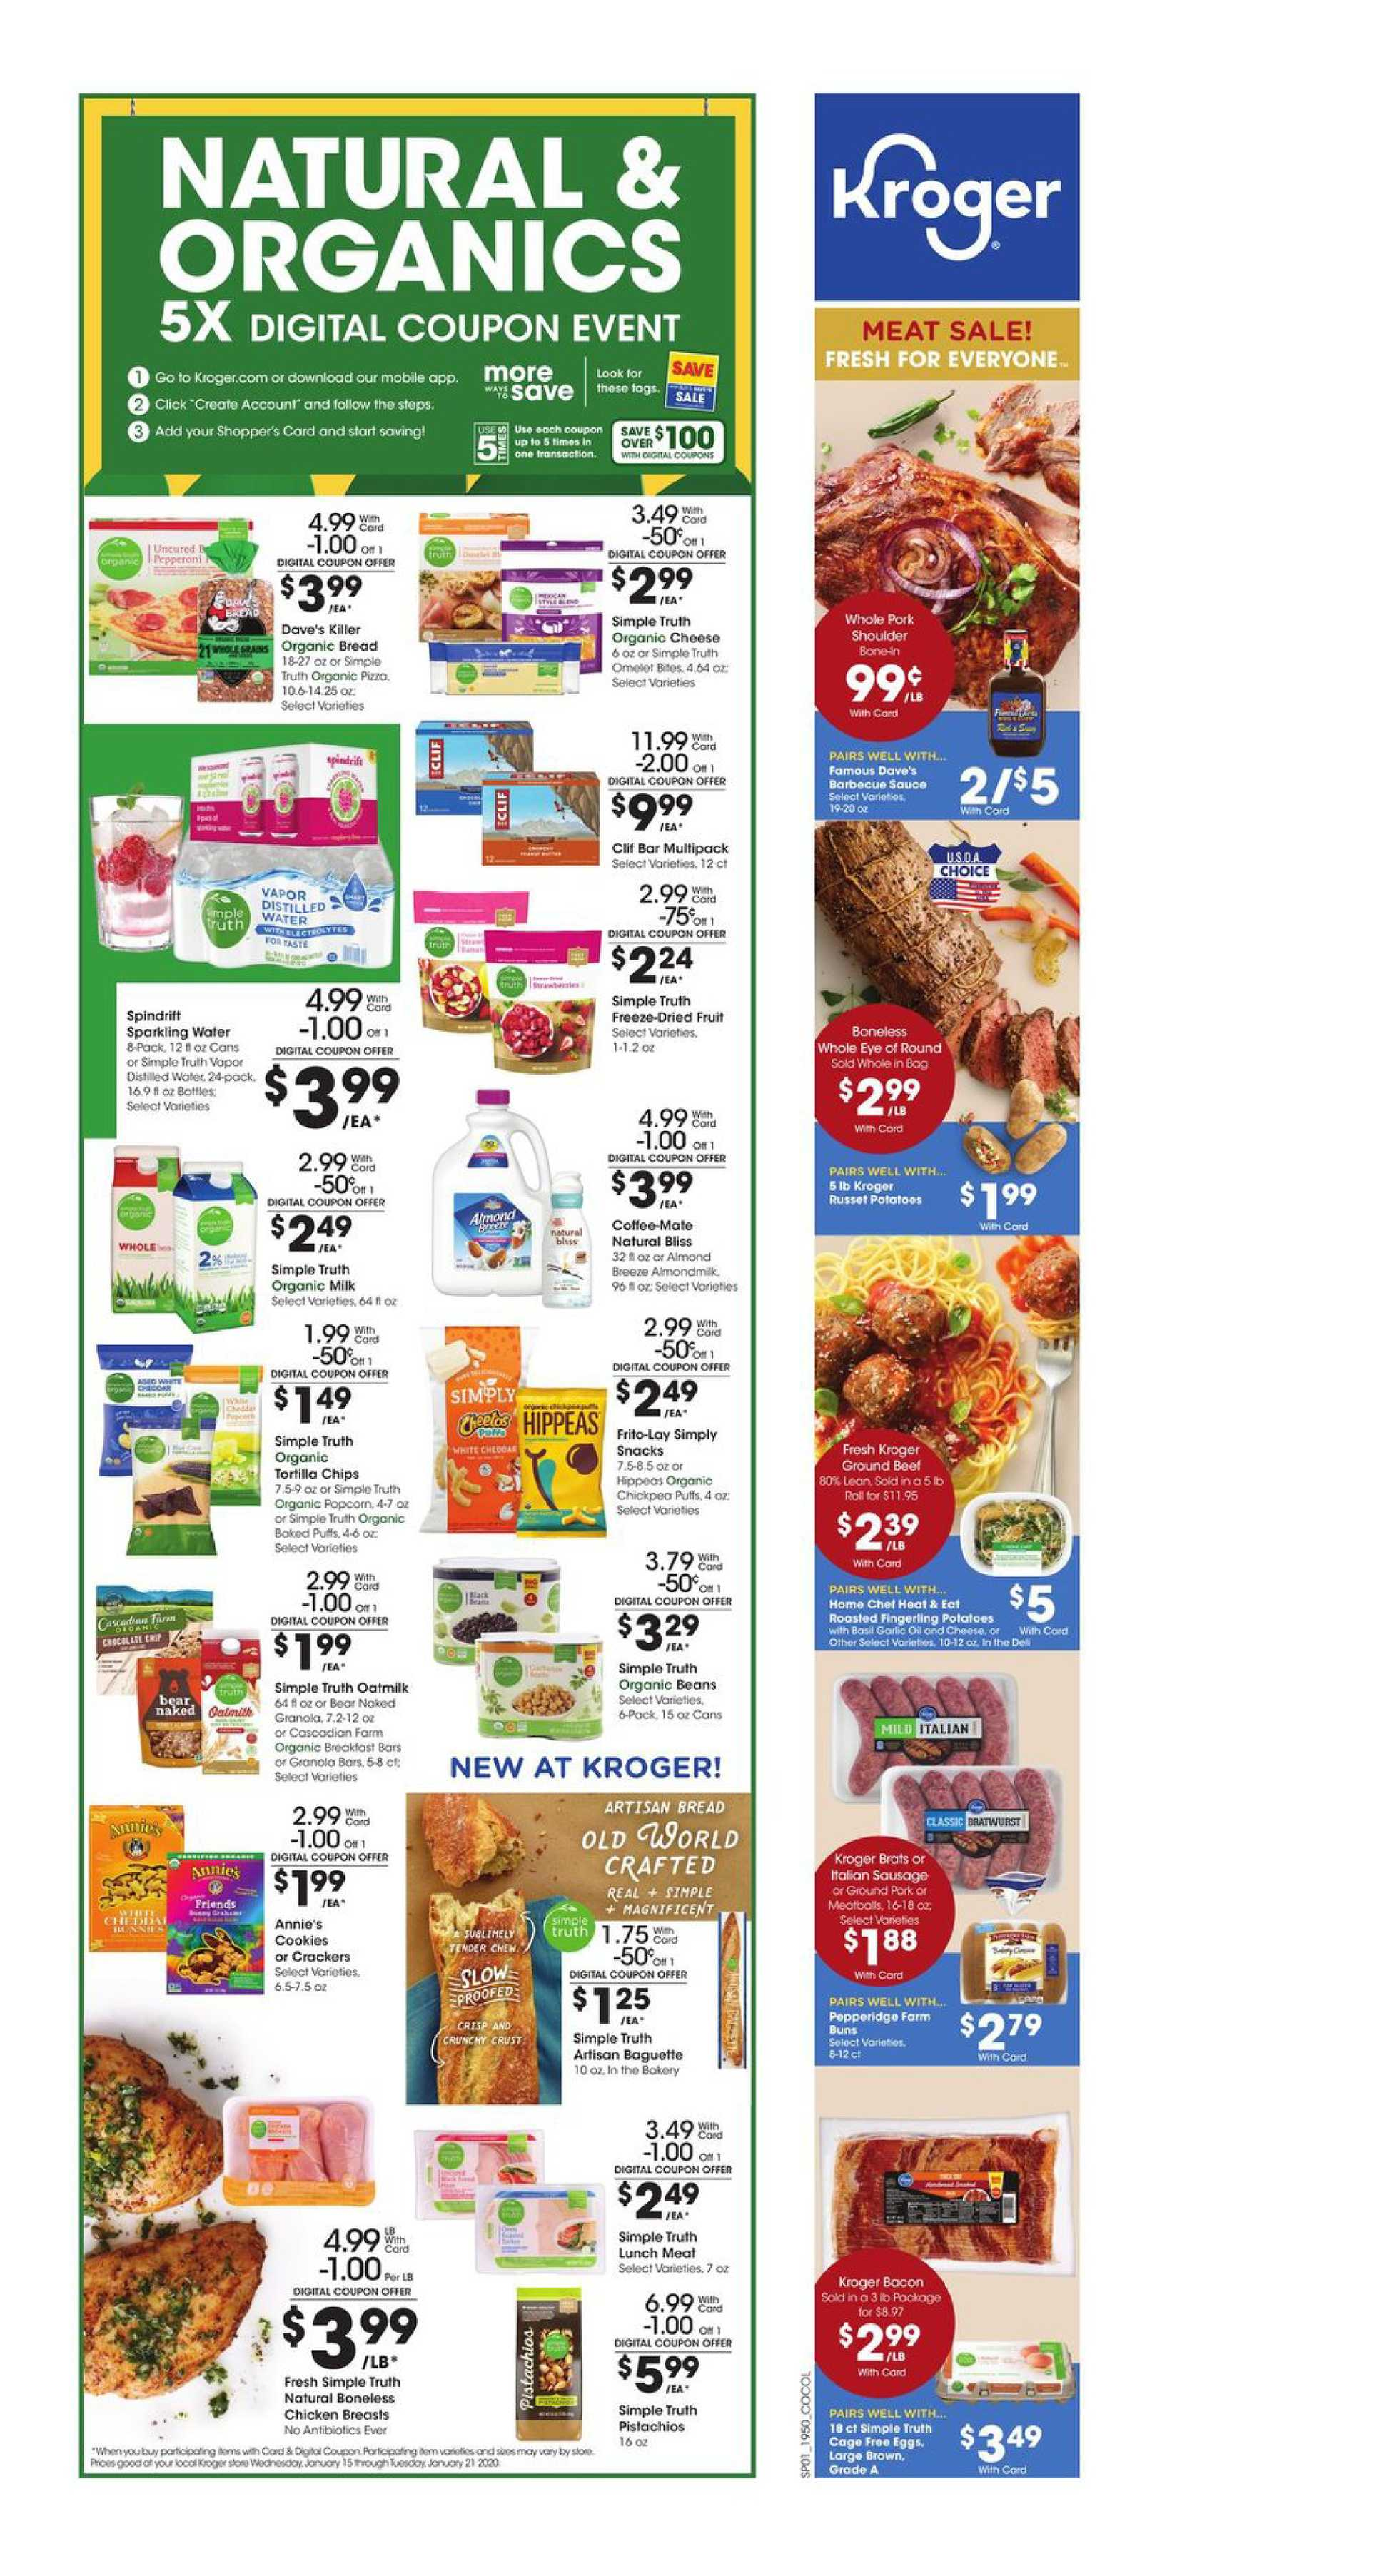 Kroger - promo starting from 01/15/20 to 01/21/20 - page 2. The promotion includes potatoes, potatoes, mobile, beef, beef, mobile